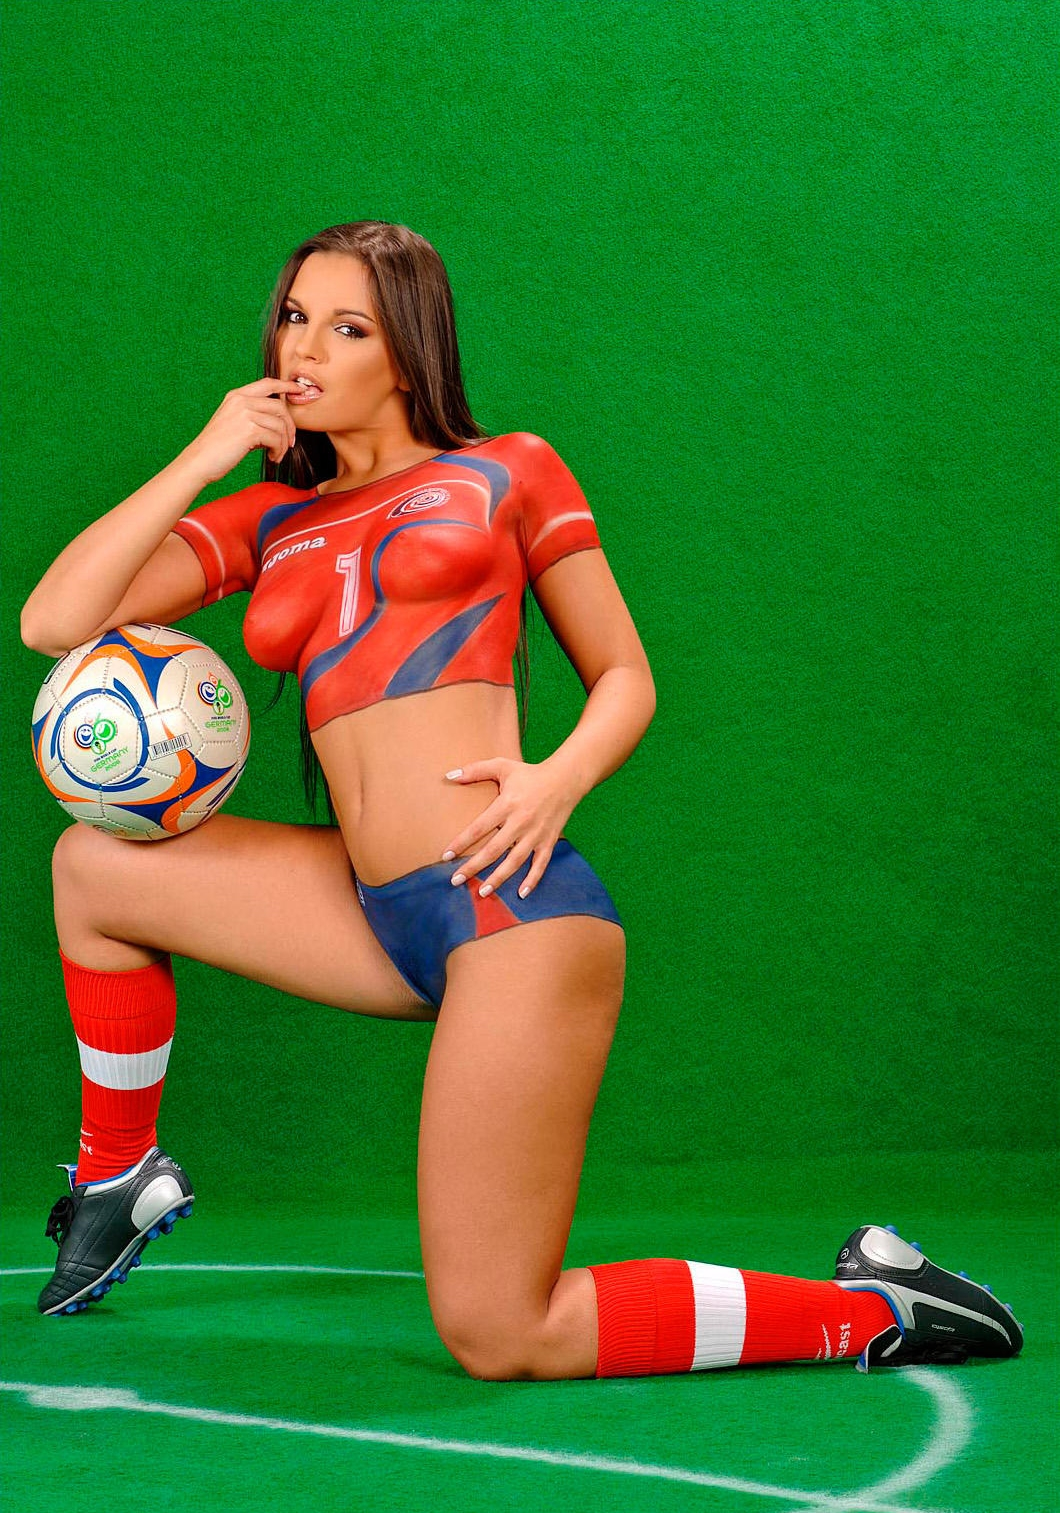 ass-erotic-football-player-girl-fucking-porn-gallery